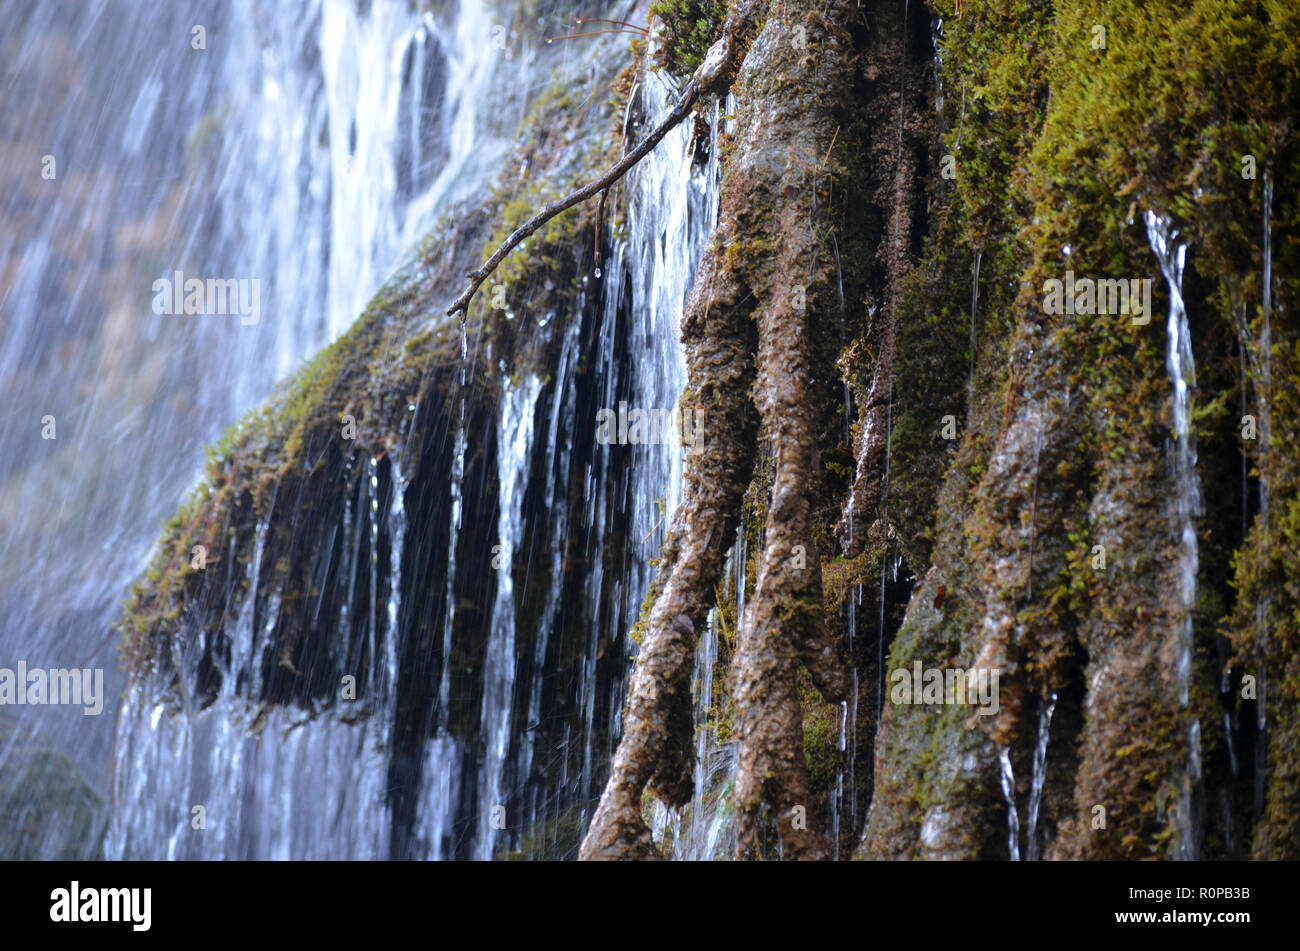 Tufas (Carbonate sinter deposits) and waterfalls in the Cuervo river, Cuenca, Spain - Stock Image